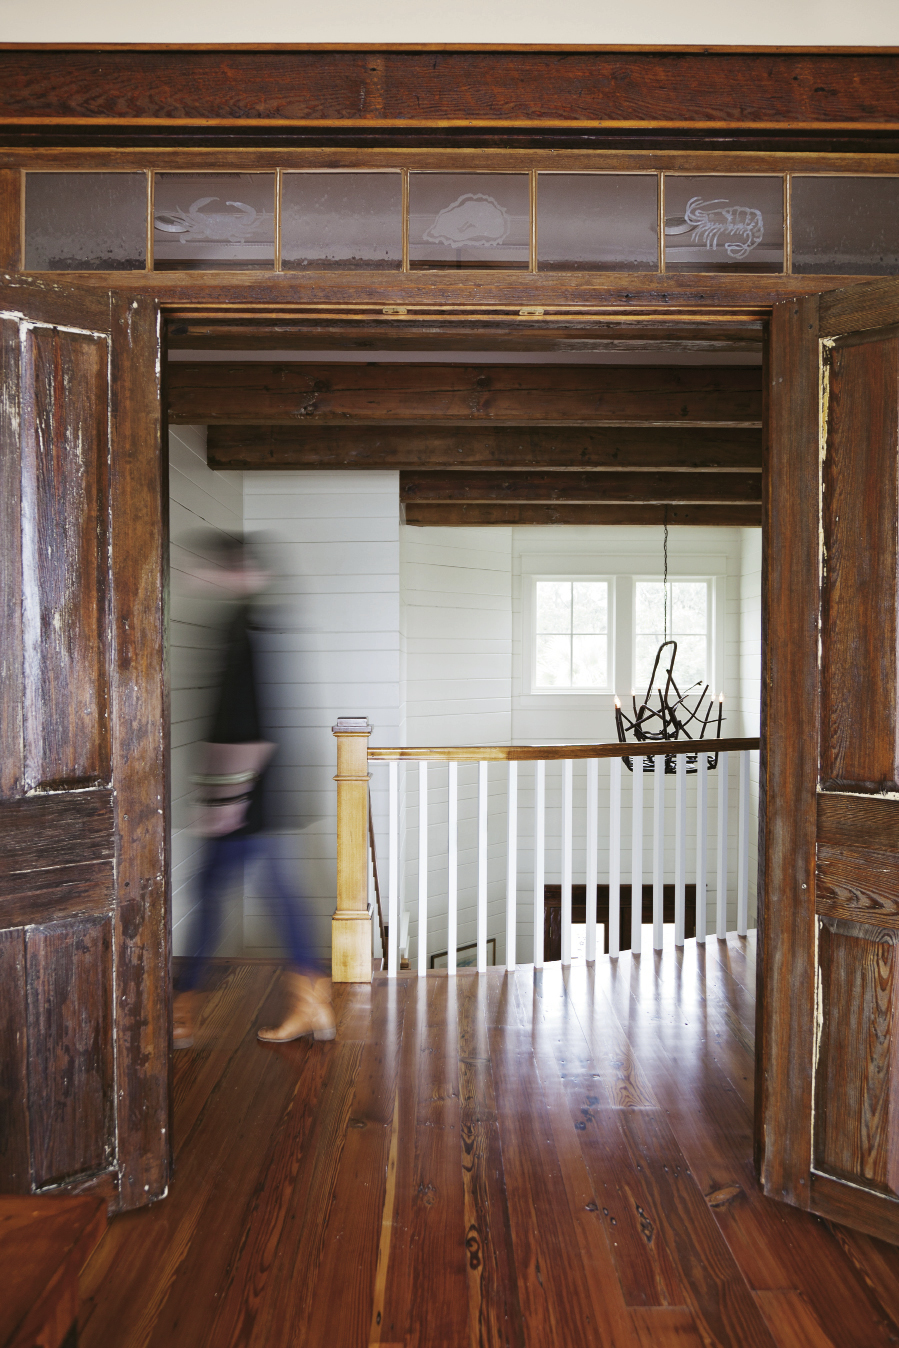 Exterior doors from a property in Newberry were fashioned as an entryway for an upstairs grandchildren's room